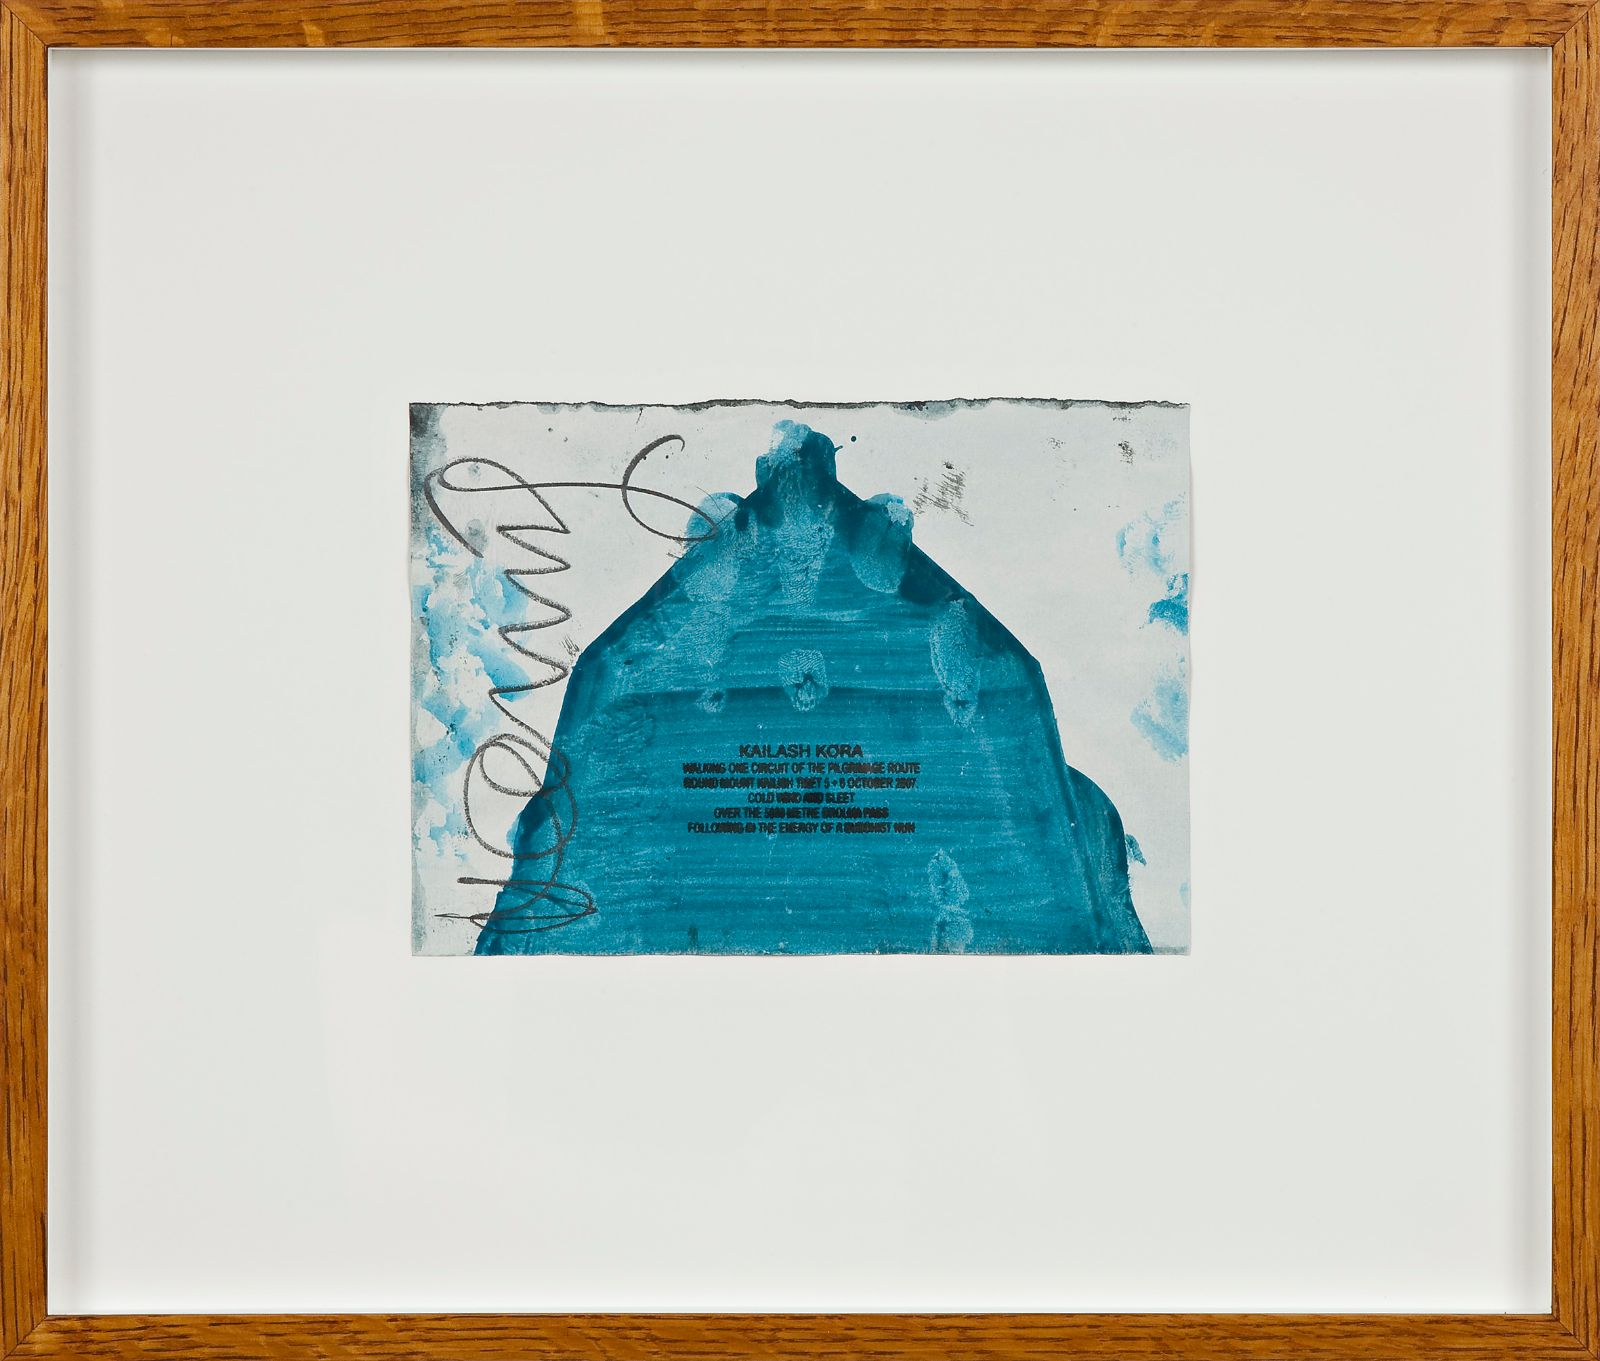 Kailash Kora, 2007, ink walk text on acrylic in artist frame, 14,5 x 20,7 cm